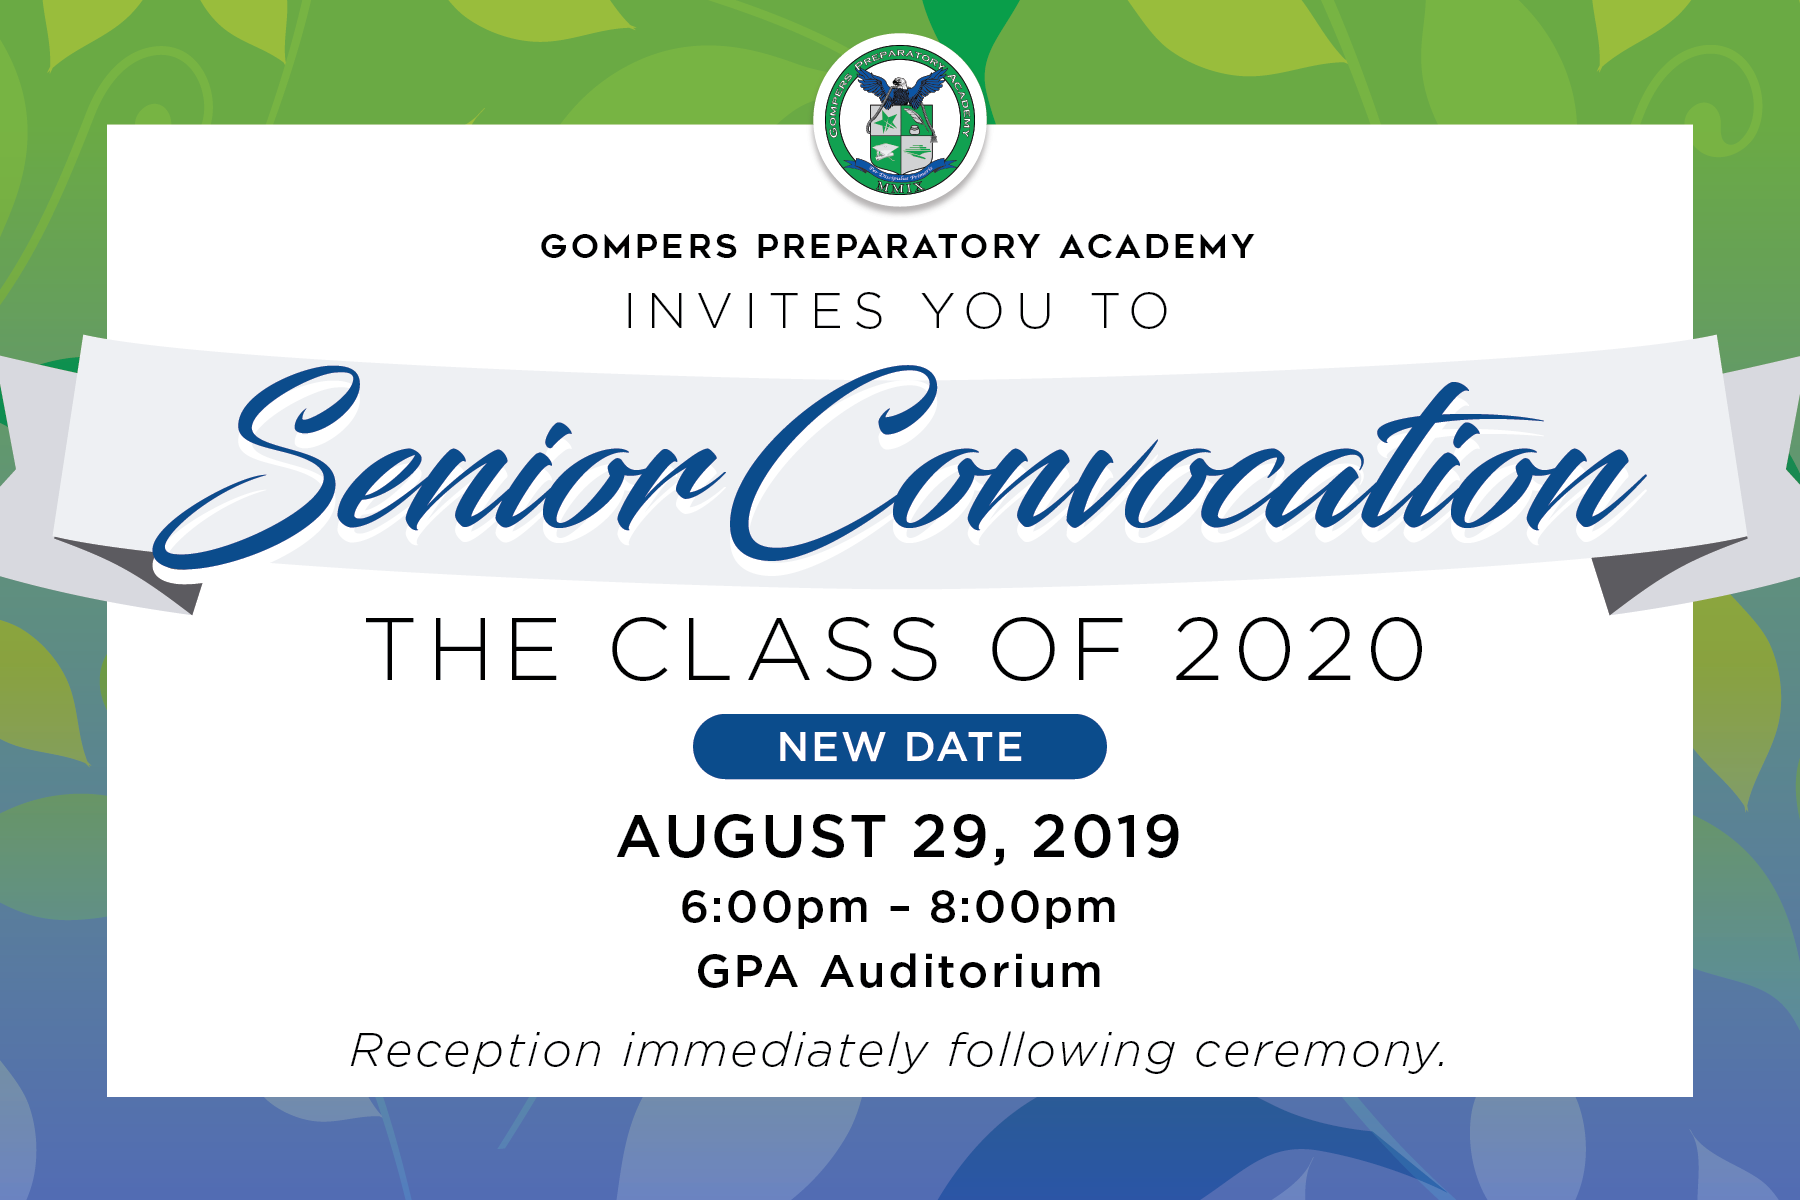 NEW DATE! Senior Convocation: The Class of 2020